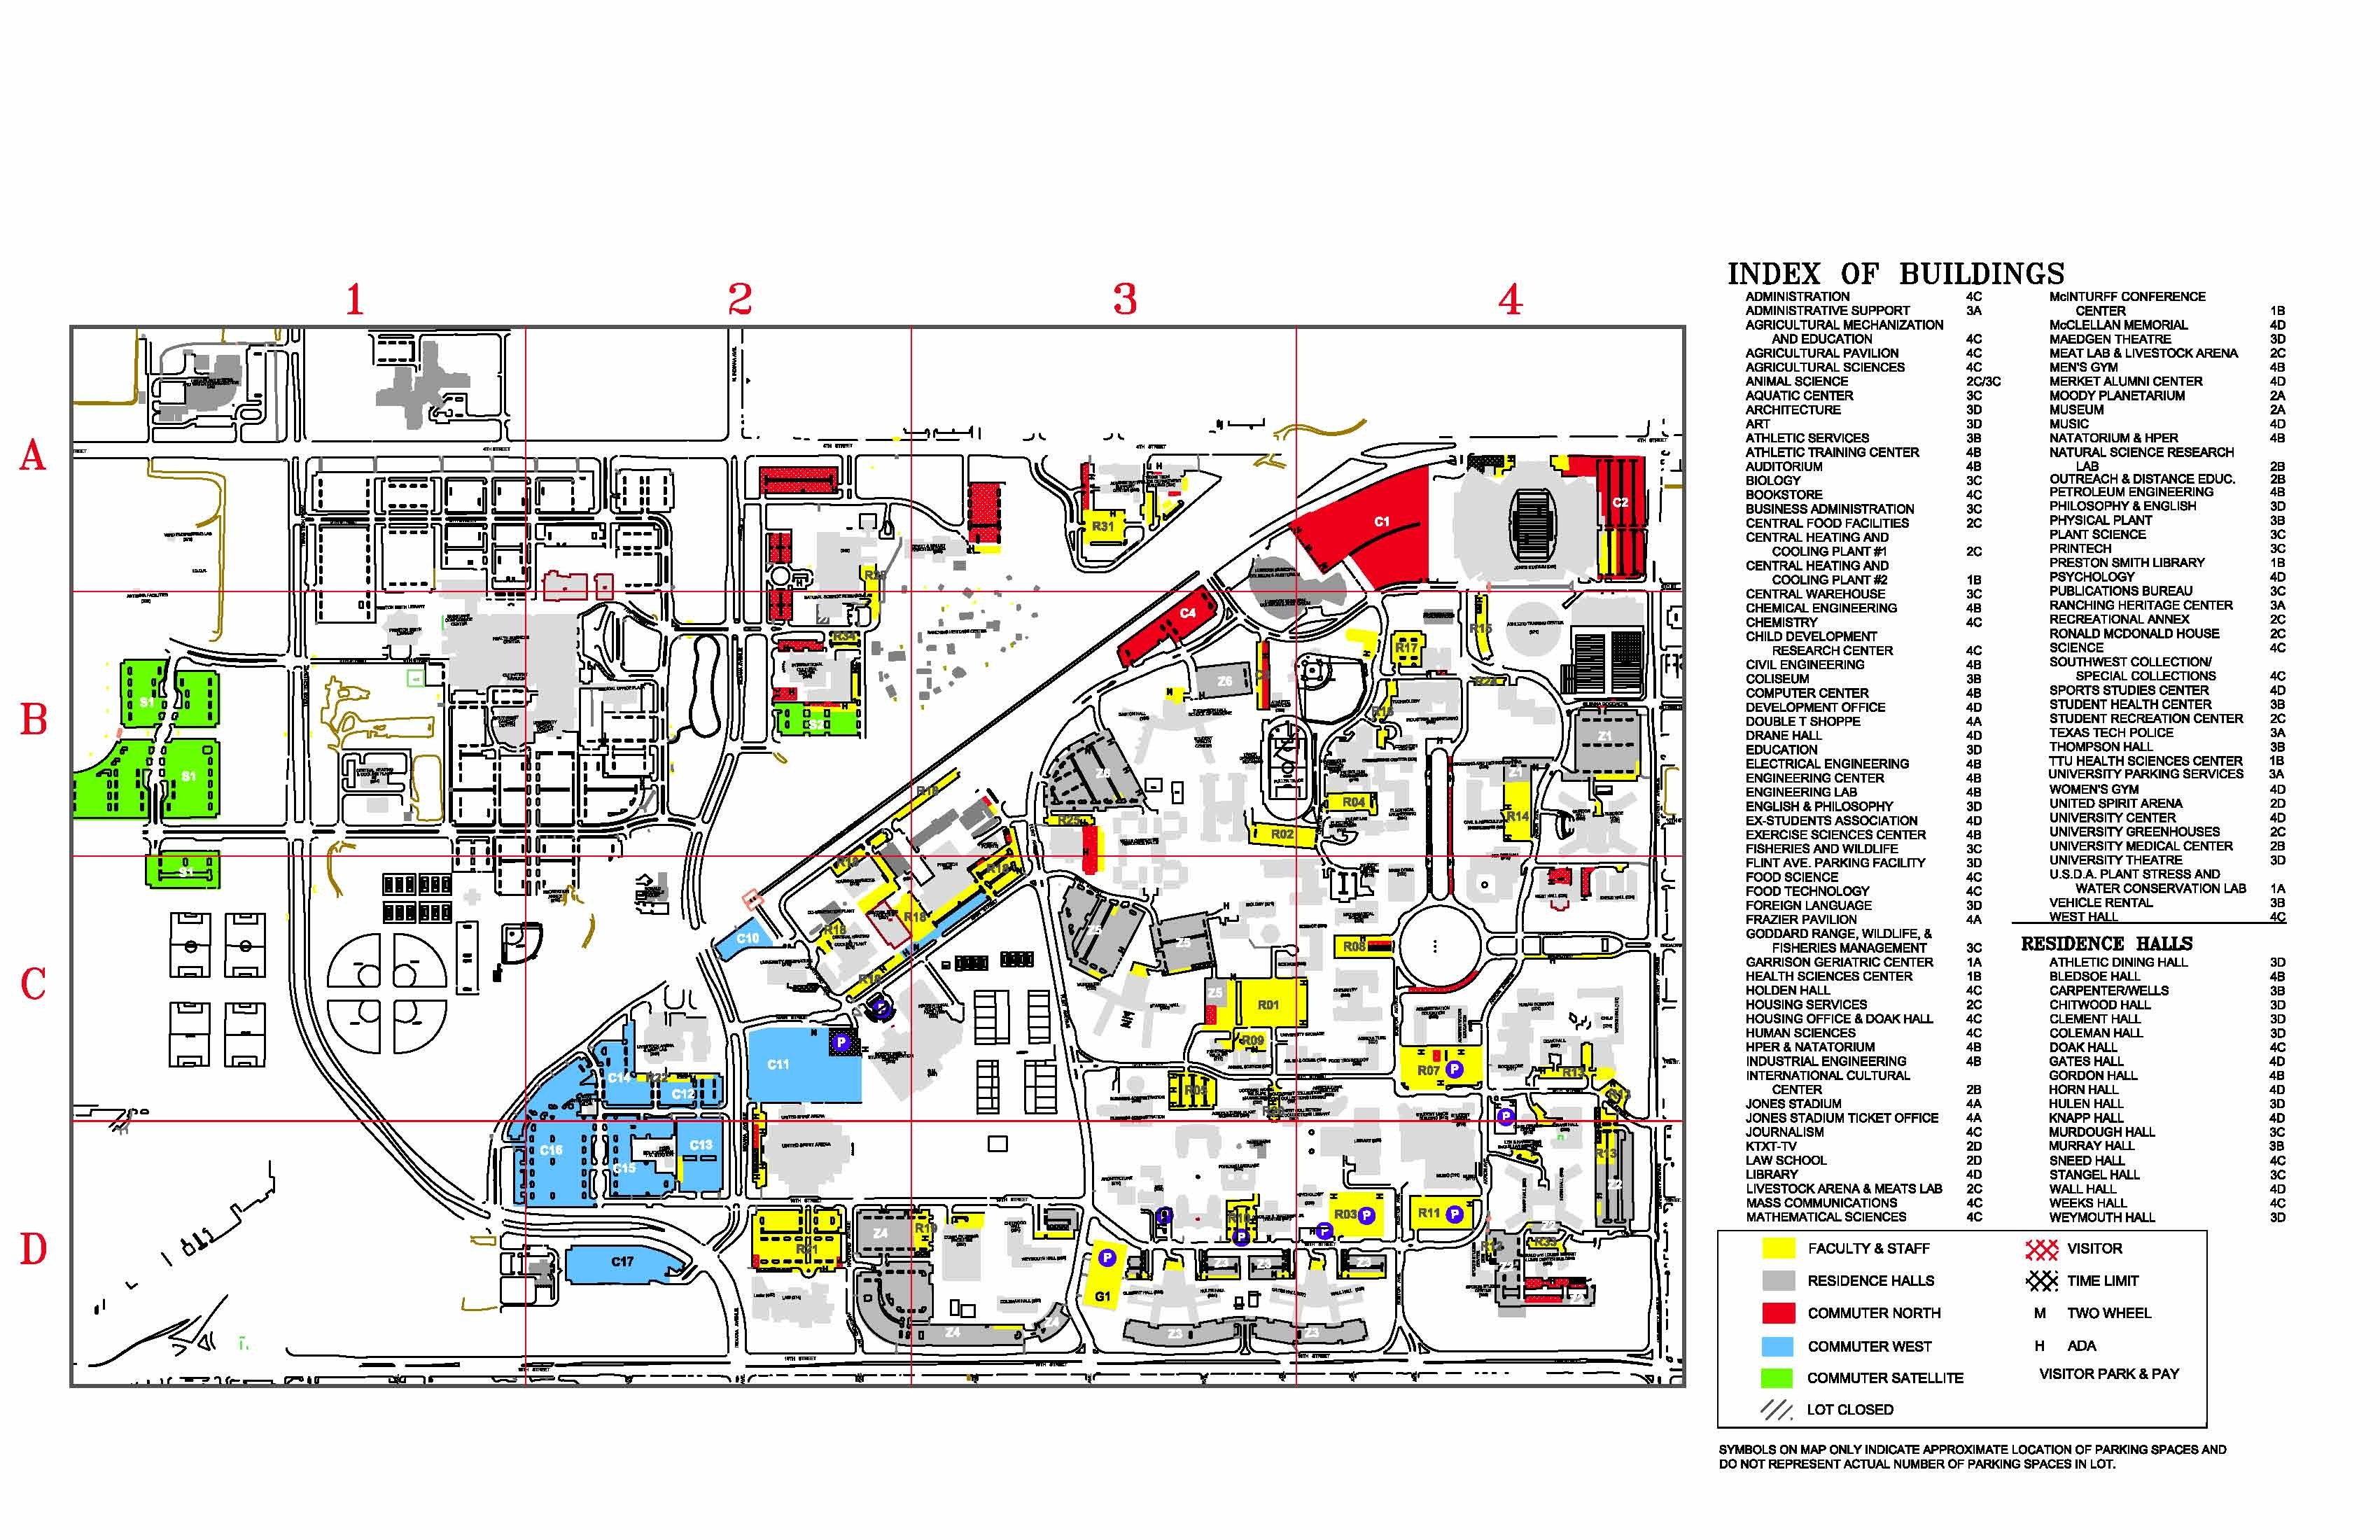 E2Zuxppk1Tfuf Yk S0 D 11 Texas Tech Campus Map | Ageorgio - Texas Tech Campus Map